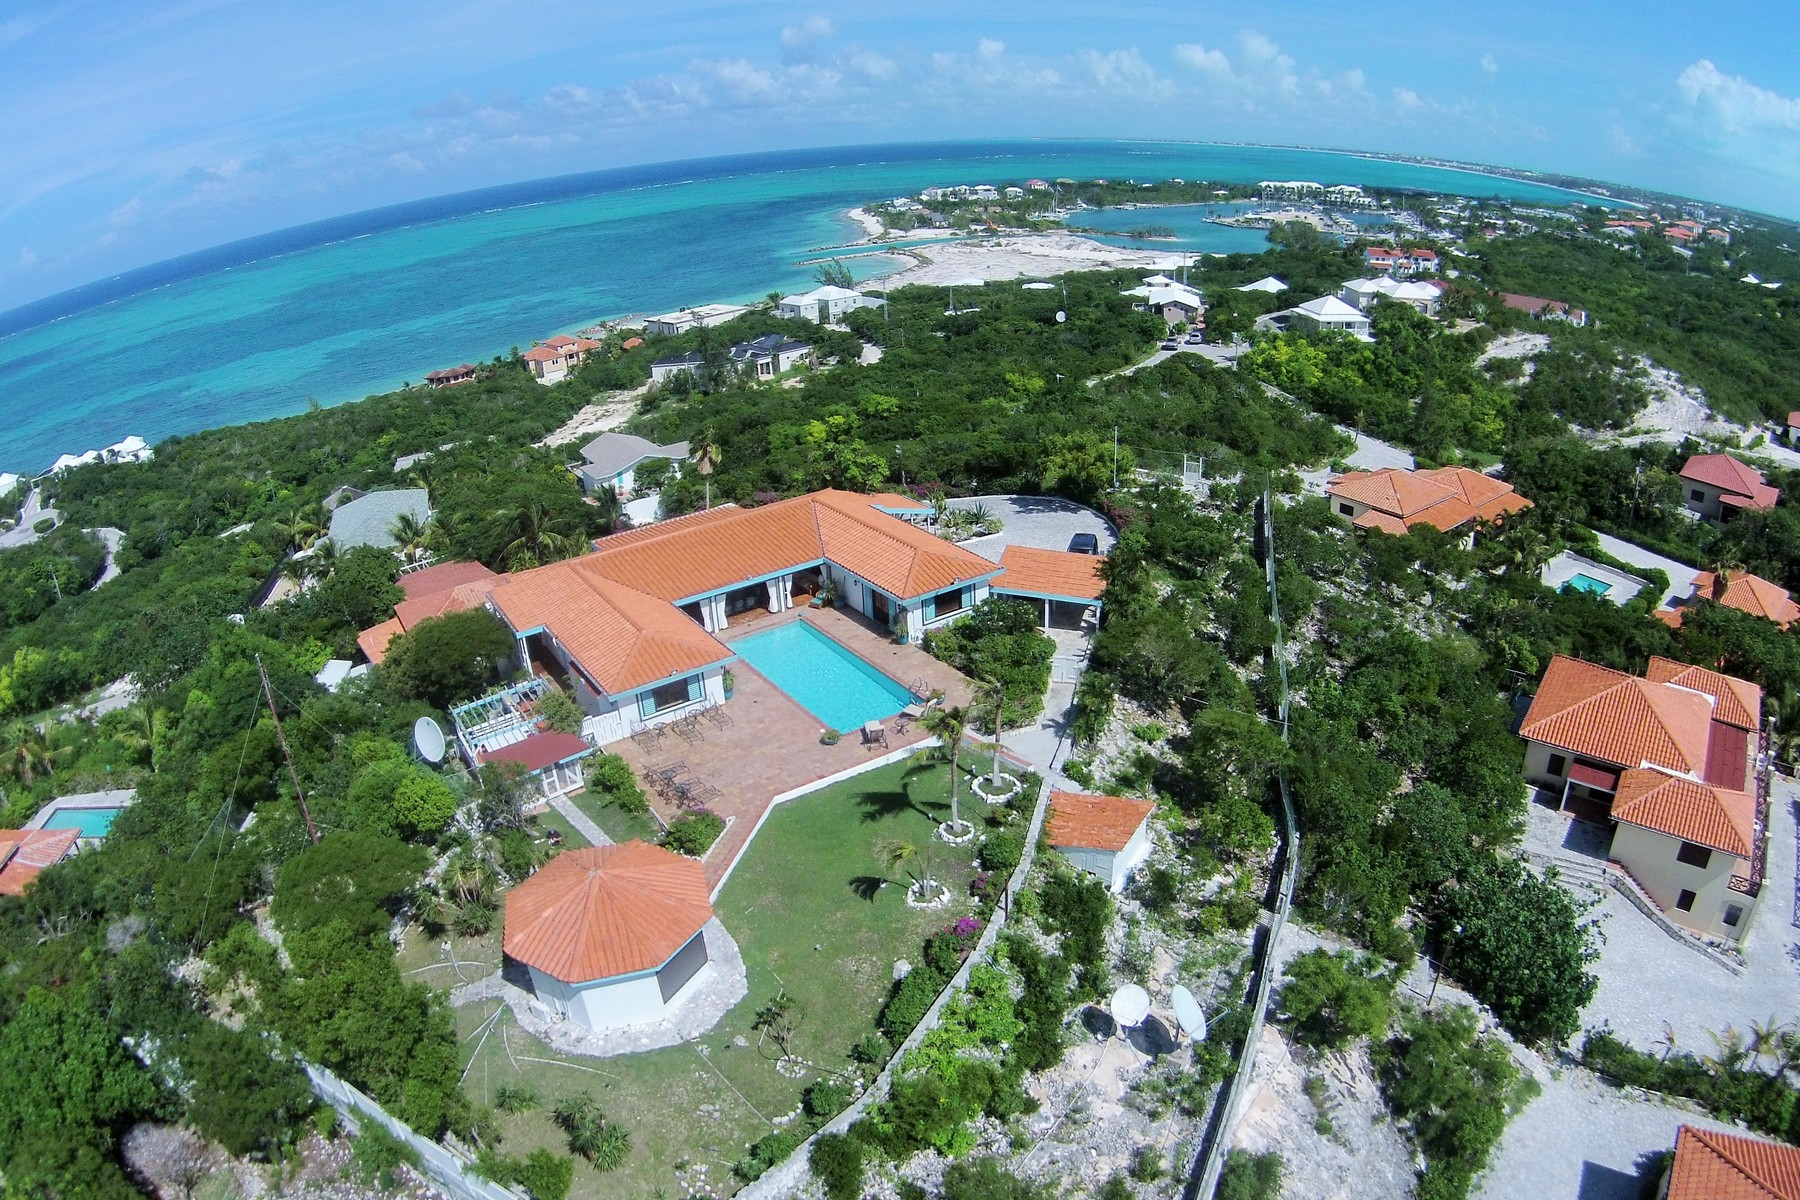 Single Family Home for Sale at Point of View Drive Blue Mountain, Providenciales Turks And Caicos Islands